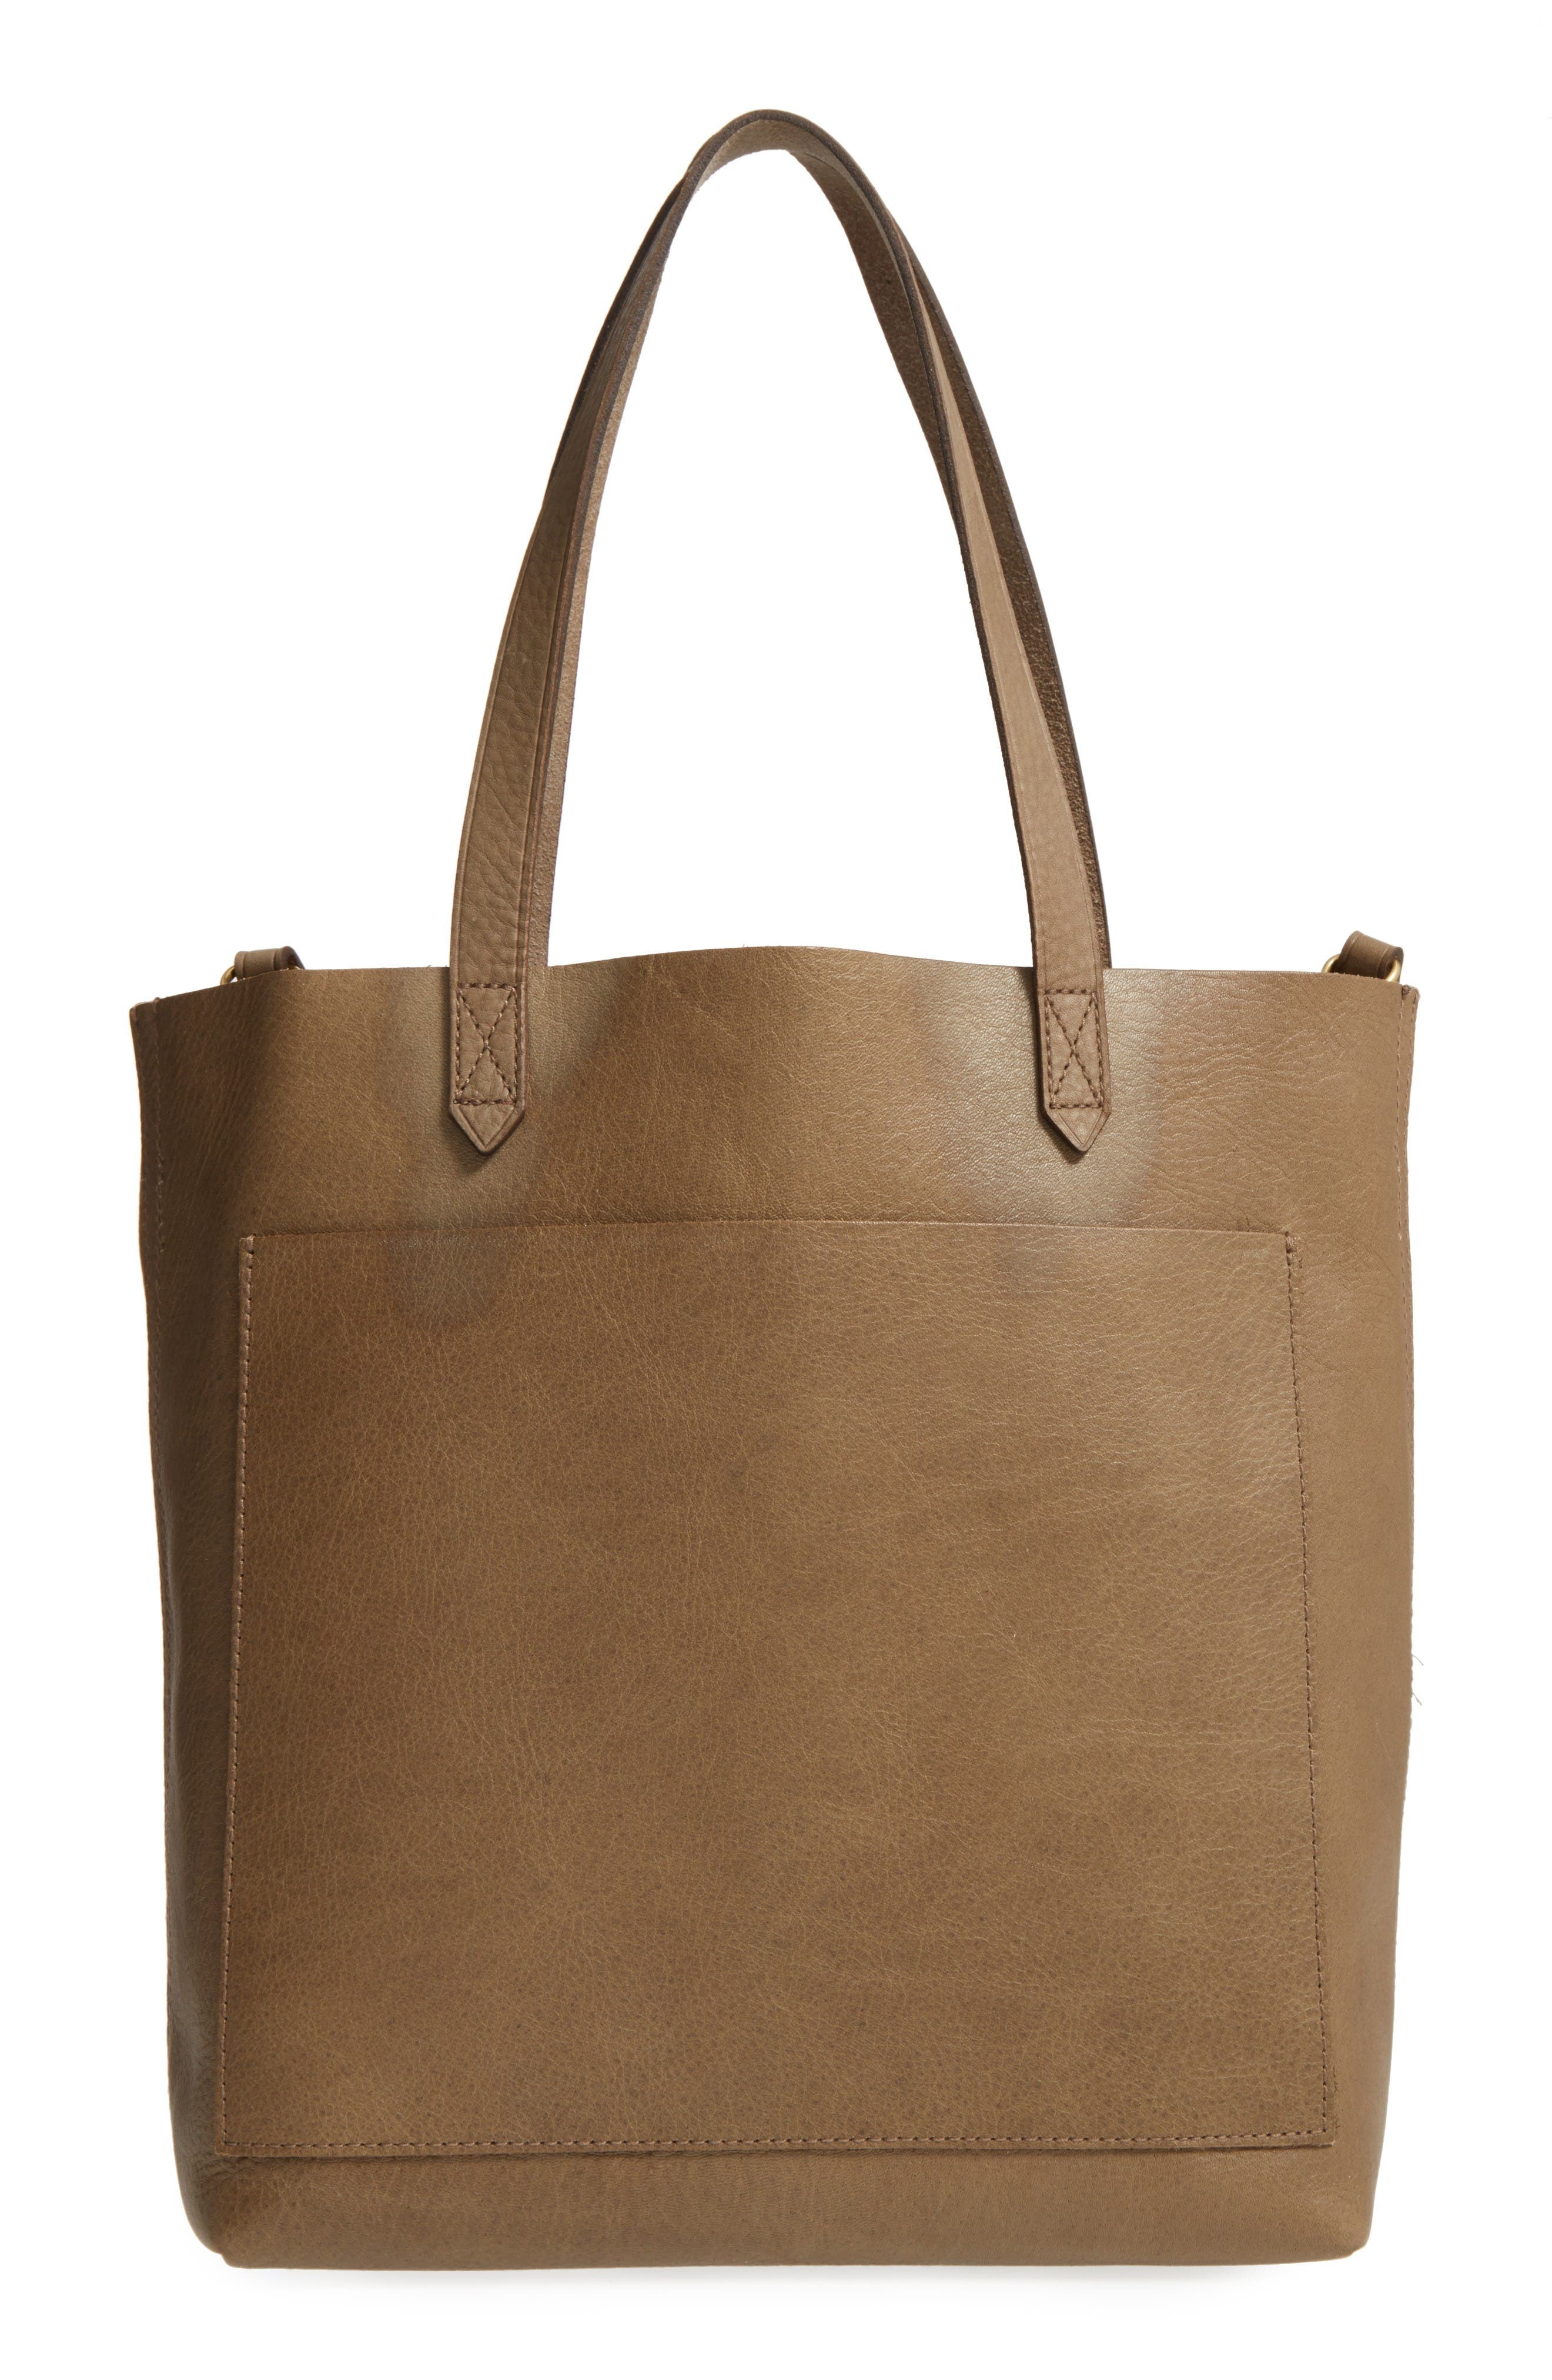 Medium Leather Transport Tote,                         Main,                         color, Washed Olive